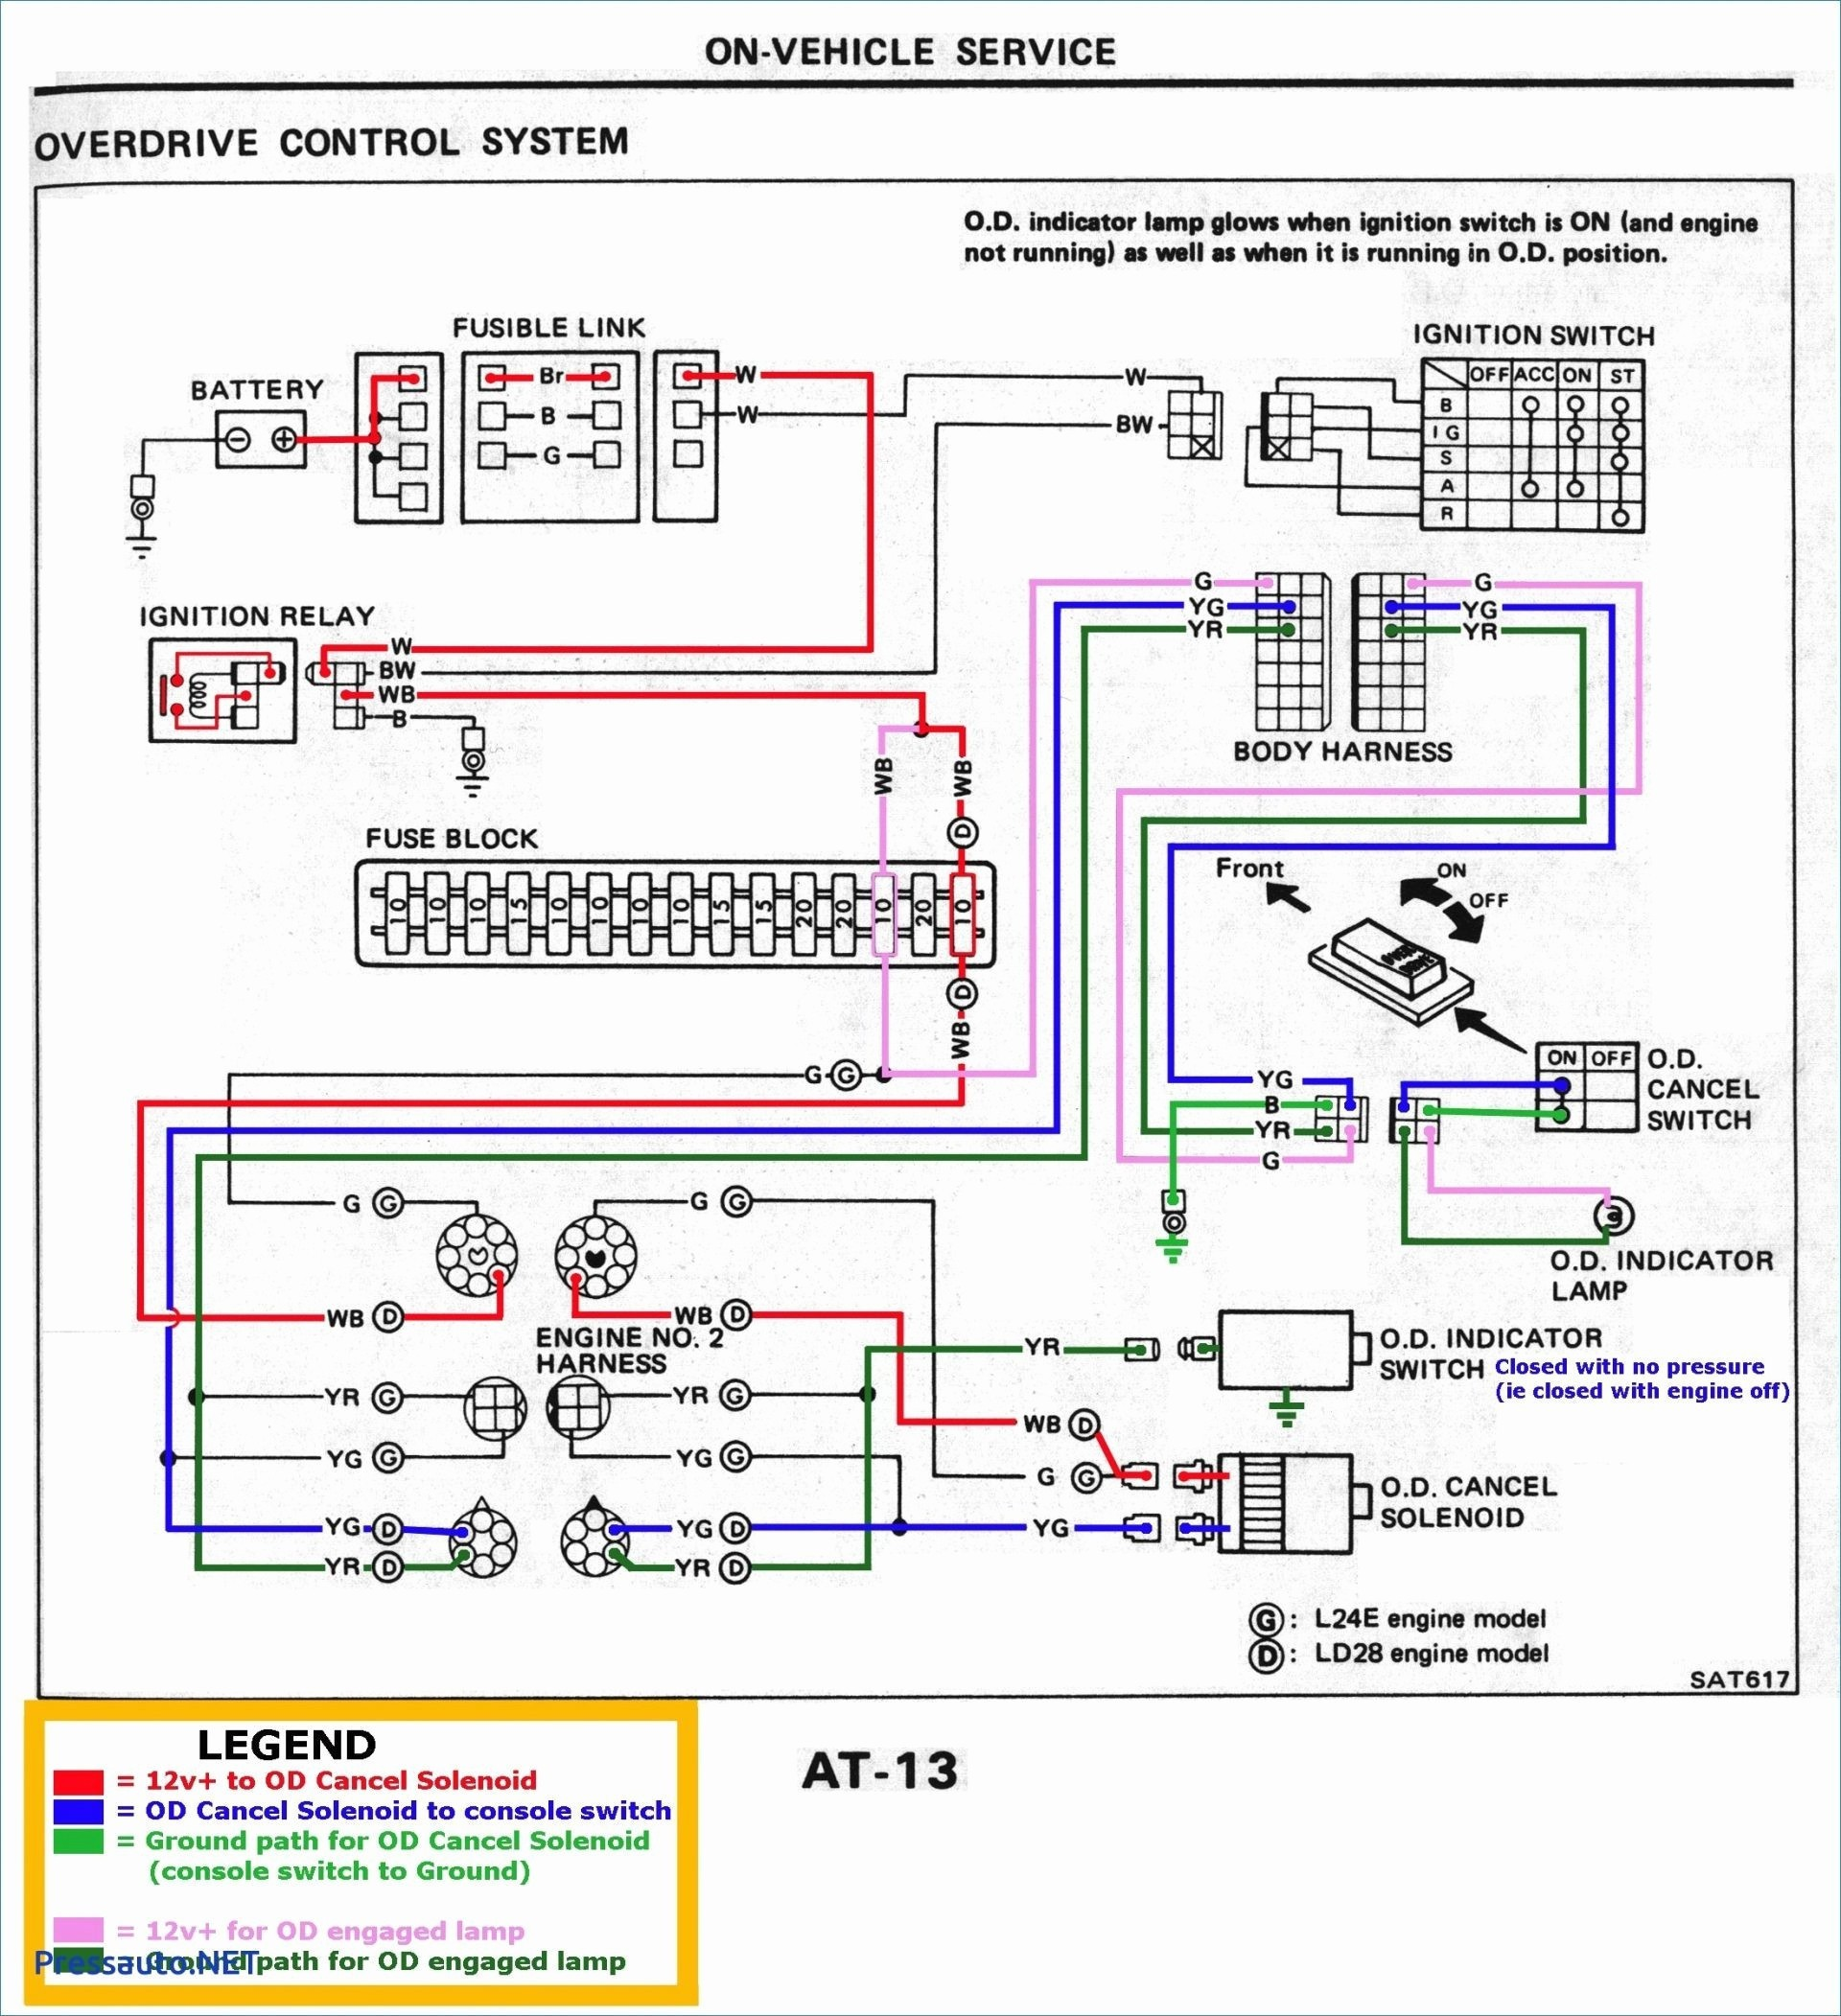 hight resolution of h22 obd2 wiring diagram wiring diagrams bibh22 obd2 wiring diagram wiring diagram article review obd2 h22